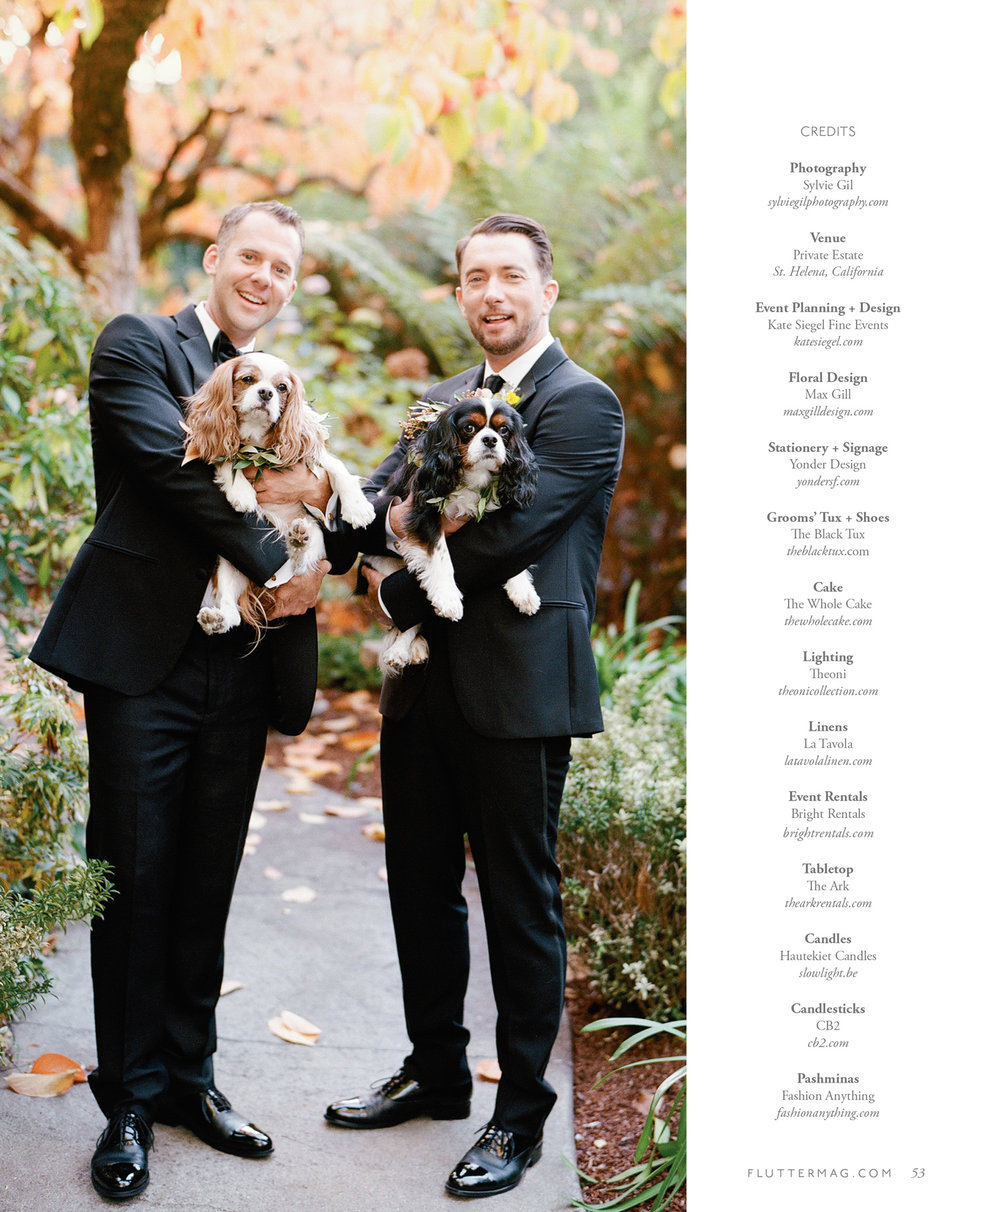 Chris & Andrew with their King Charles spaniels in Flutter Magazine; Sylvie Gil Photography